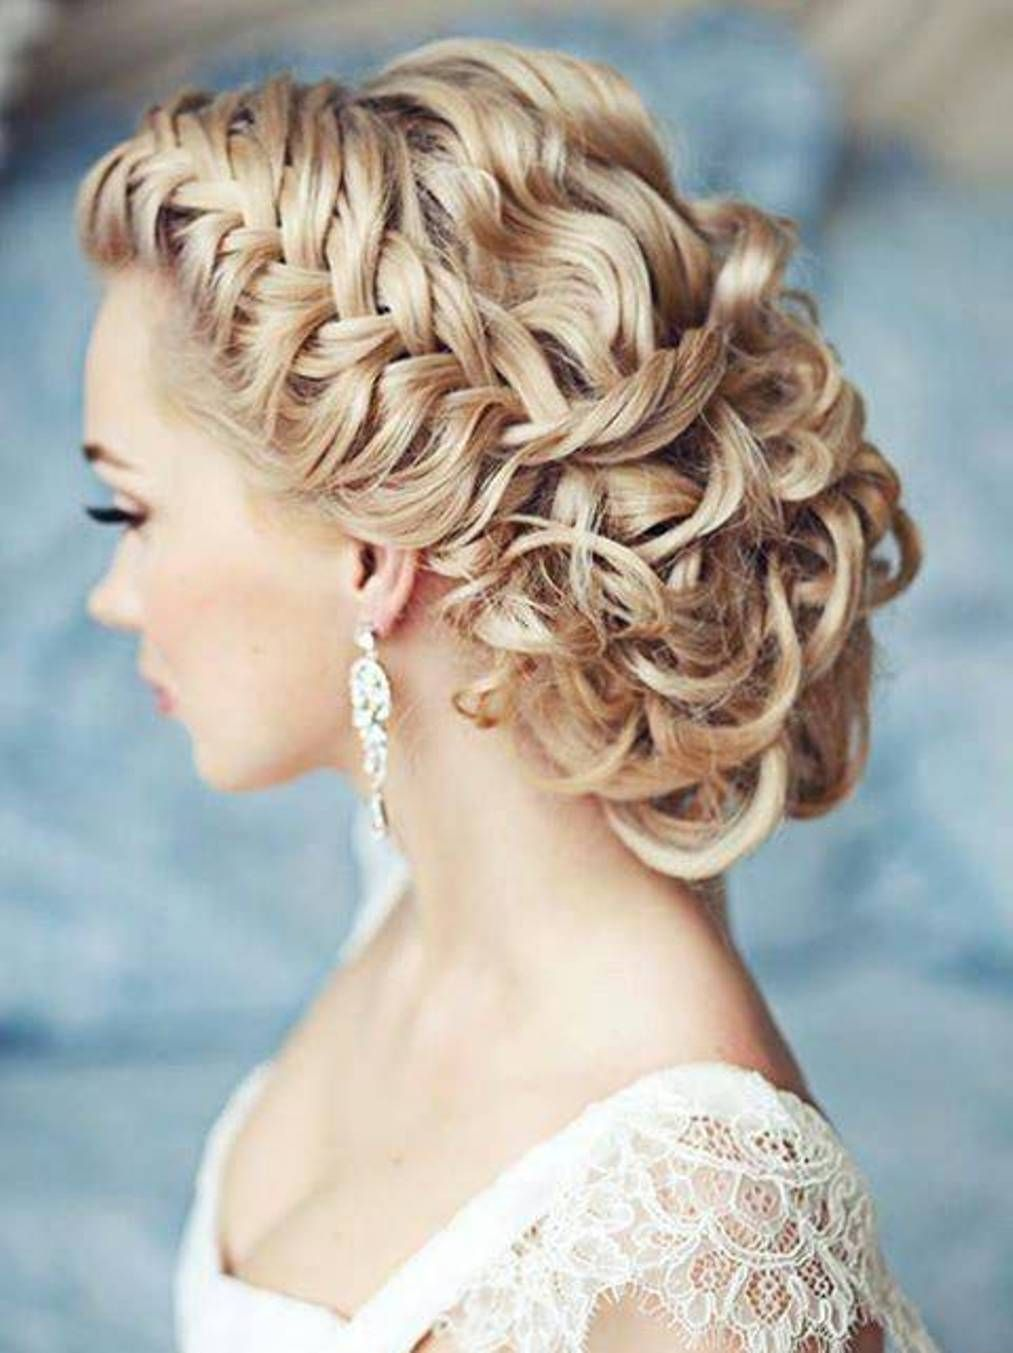 Top 20 Long Blonde Hairstyles ! Searches Wedding! And Hairstyle